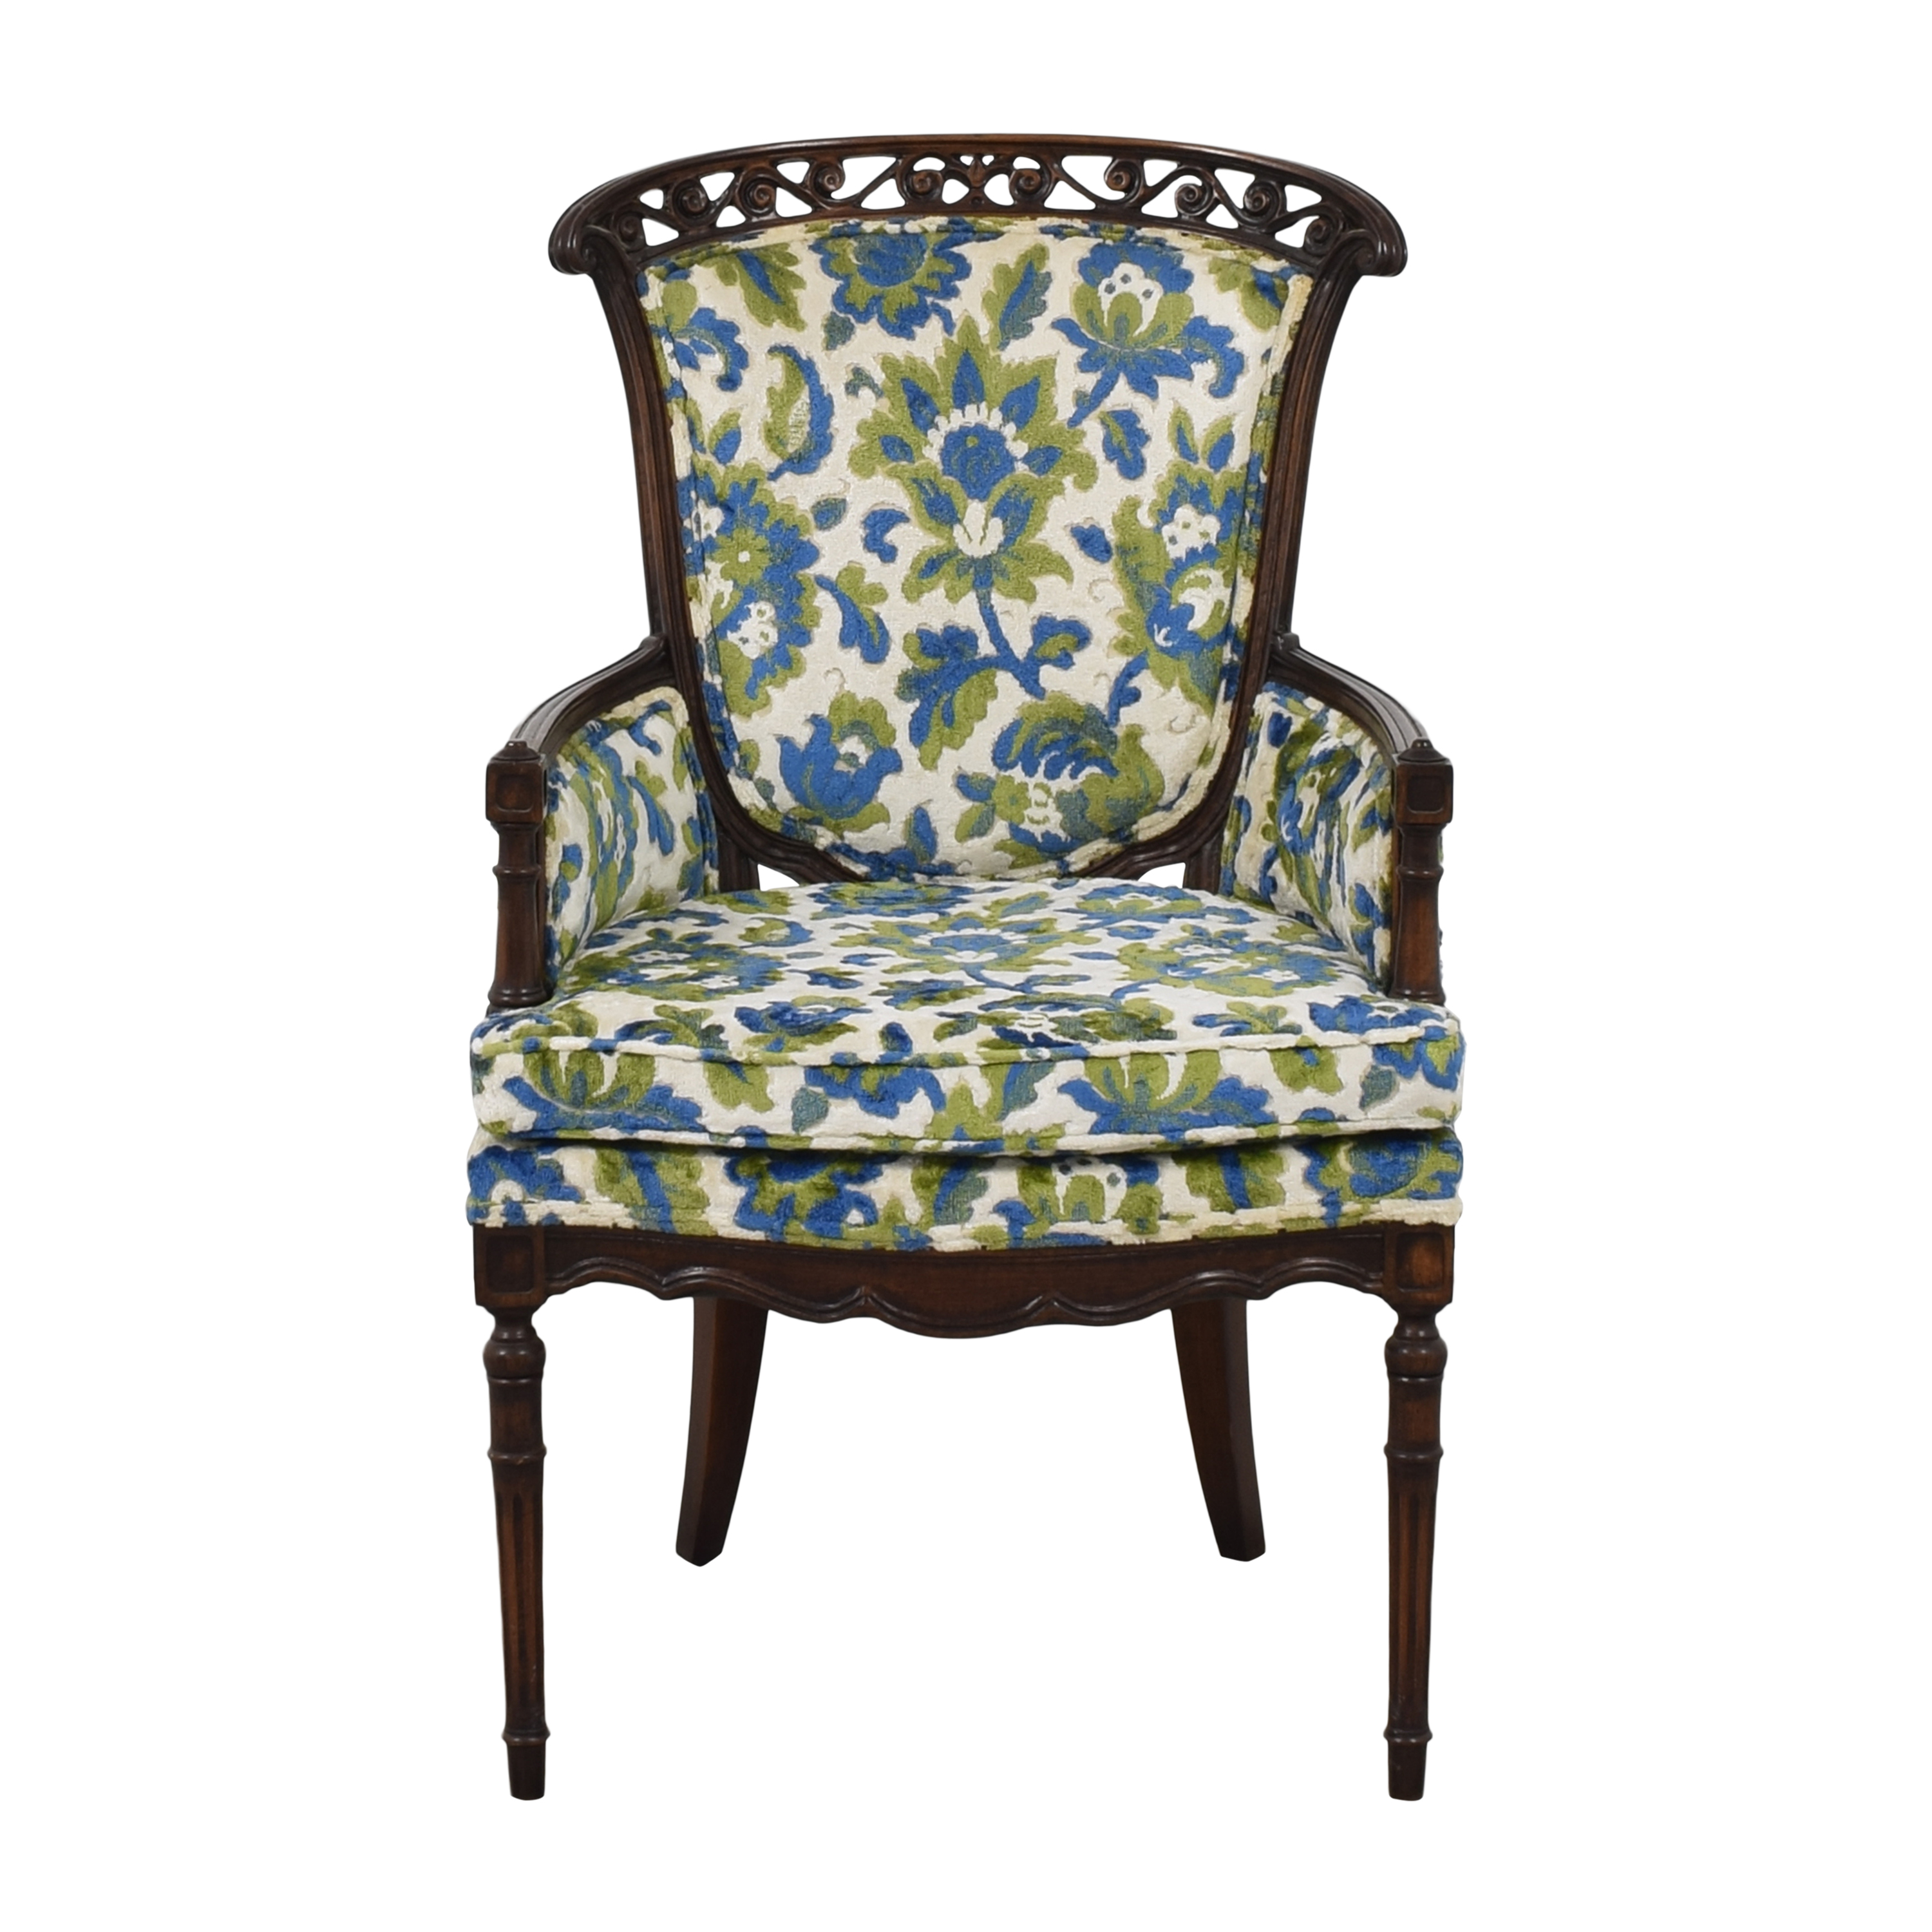 Patterned Chair / Chairs